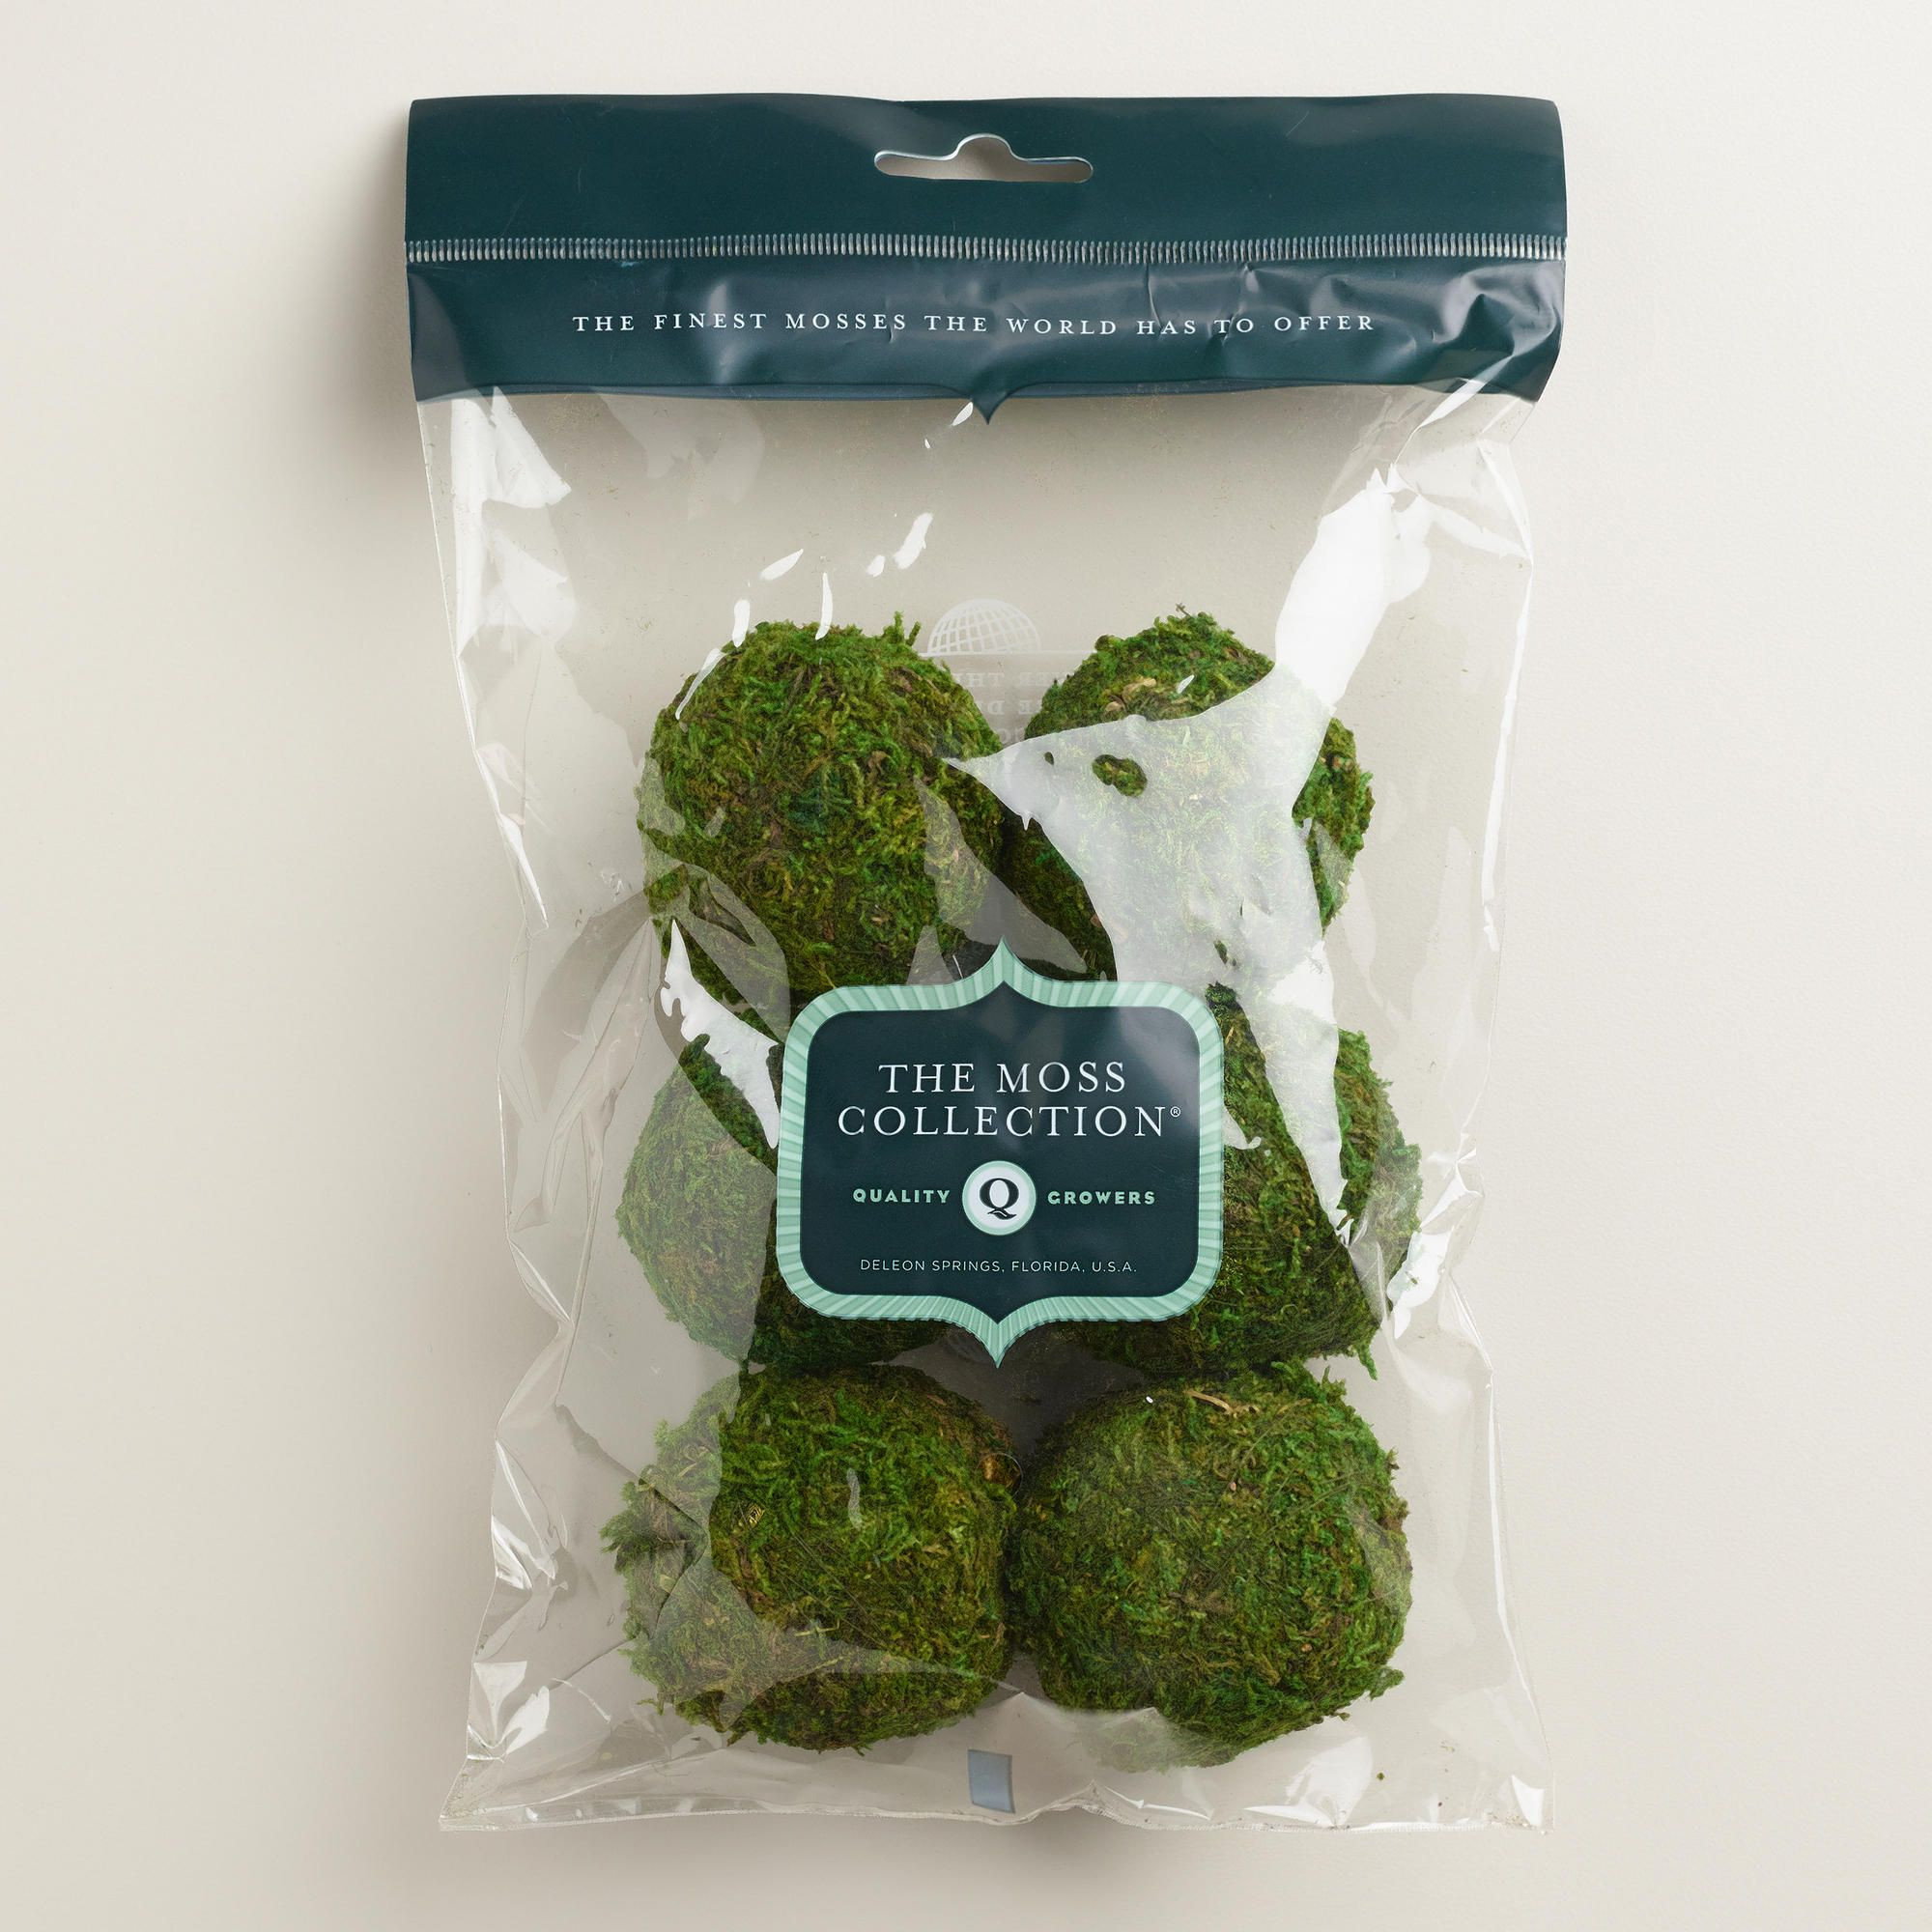 vase filler decorative balls of moss ball vase fillers 6 pack world market 2015 decorating for accent your favorite vases and terrariums with our moss ball vase fillers these plump moss balls add a fresh natural texture to your home decor